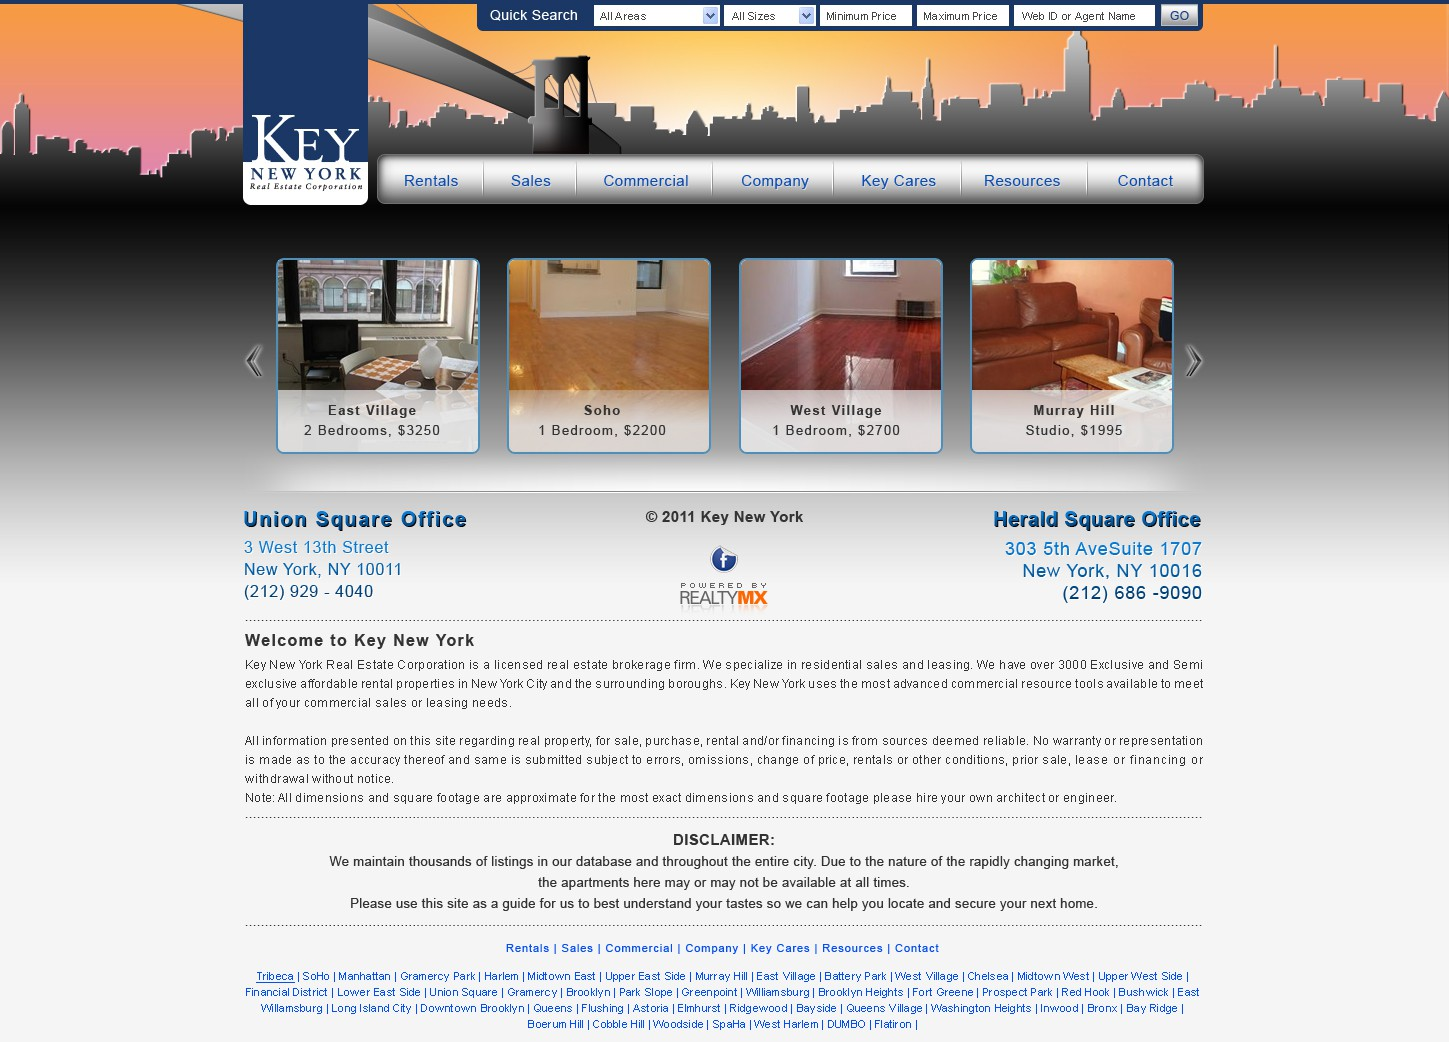 Create the next website design for Website redesign-Key New York